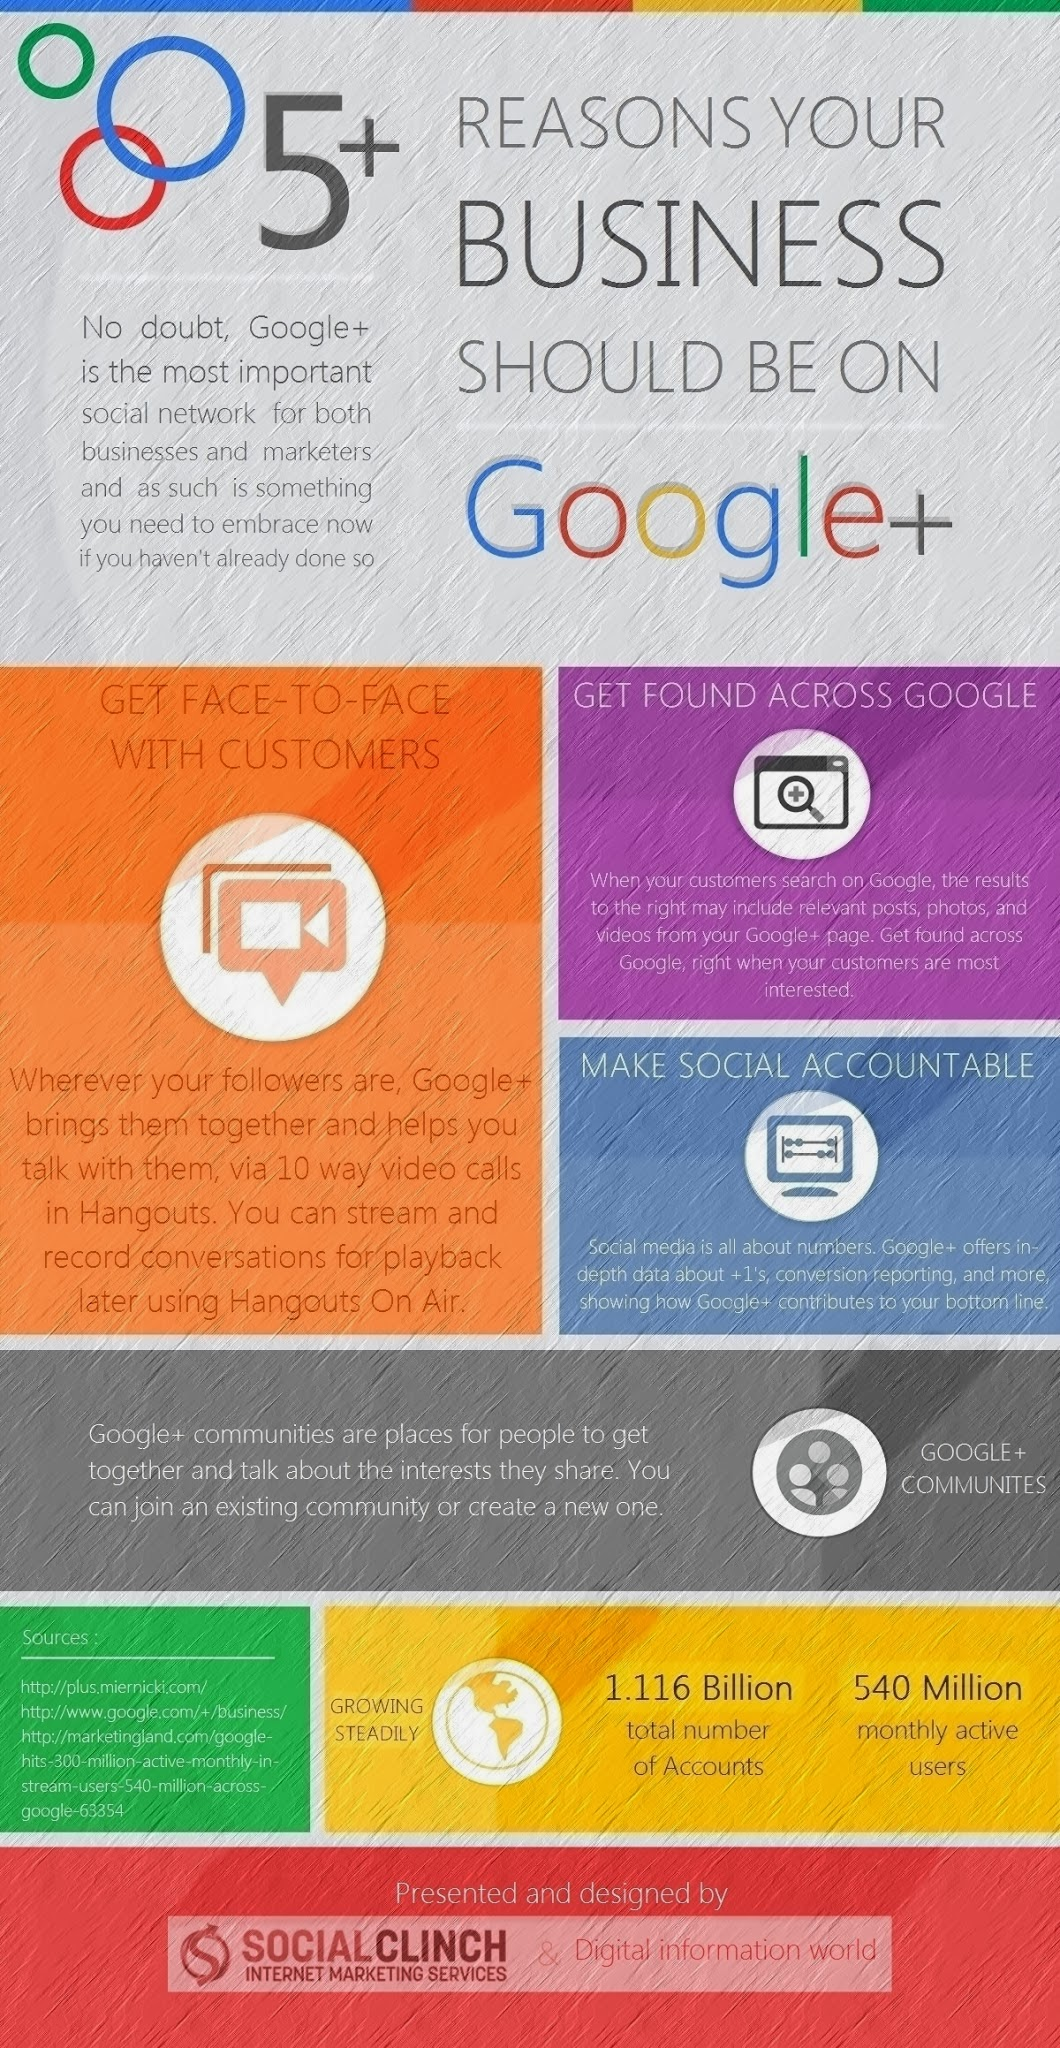 5+ Reasons Your Business Should be on Google+ [INFOGRAPHIC]